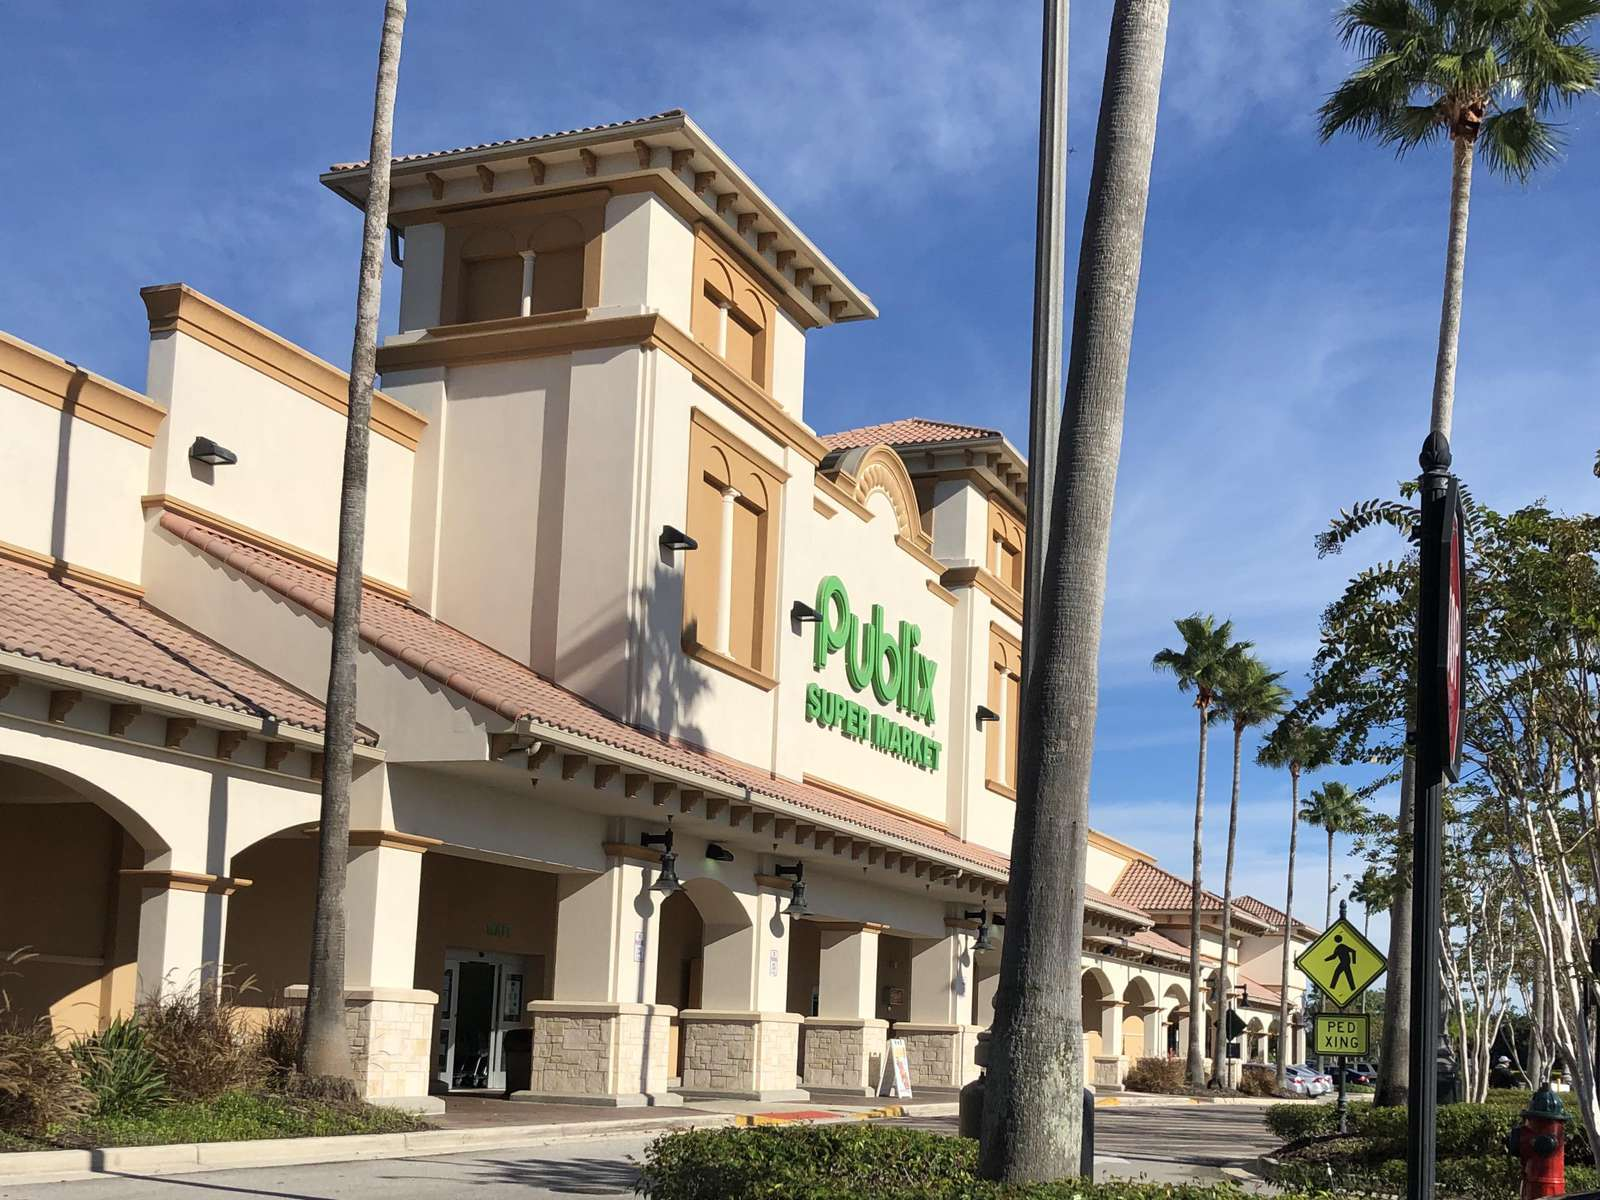 Publix Supermarket just minutes away